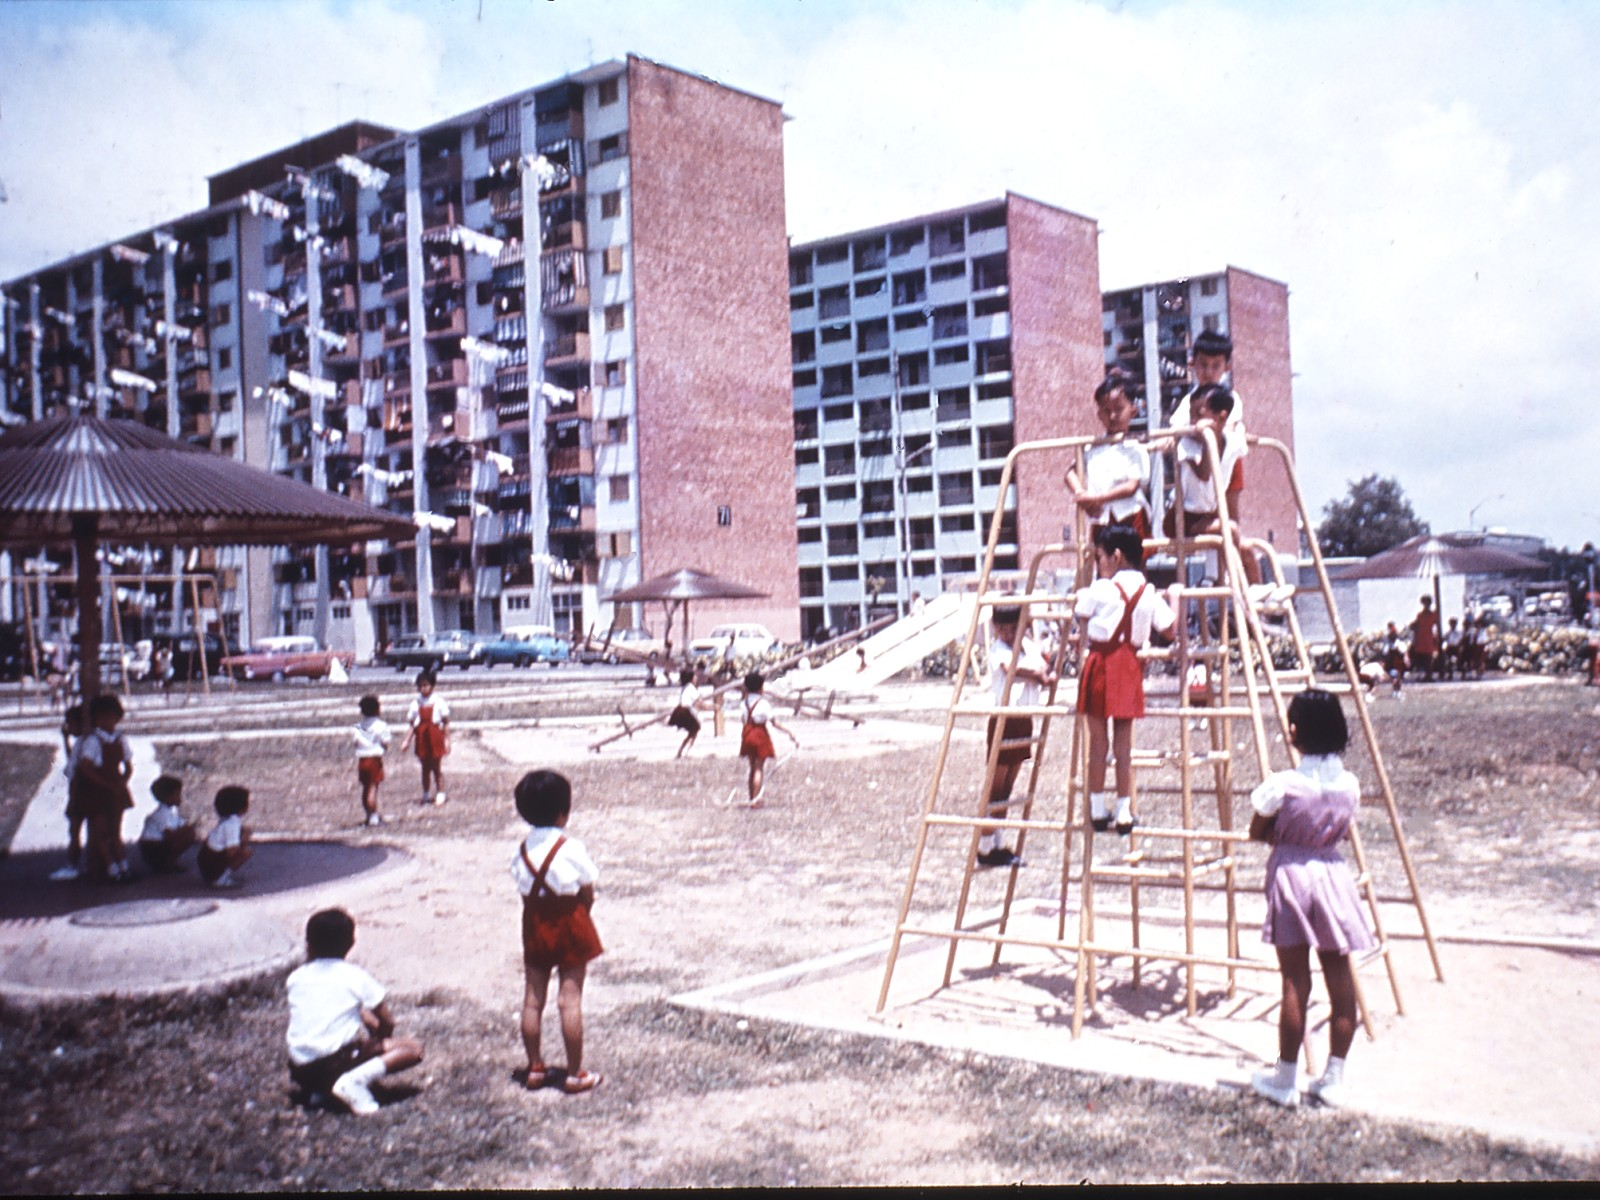 Tanglin Halt in the early 1970s. (Photo courtesy of My Community)